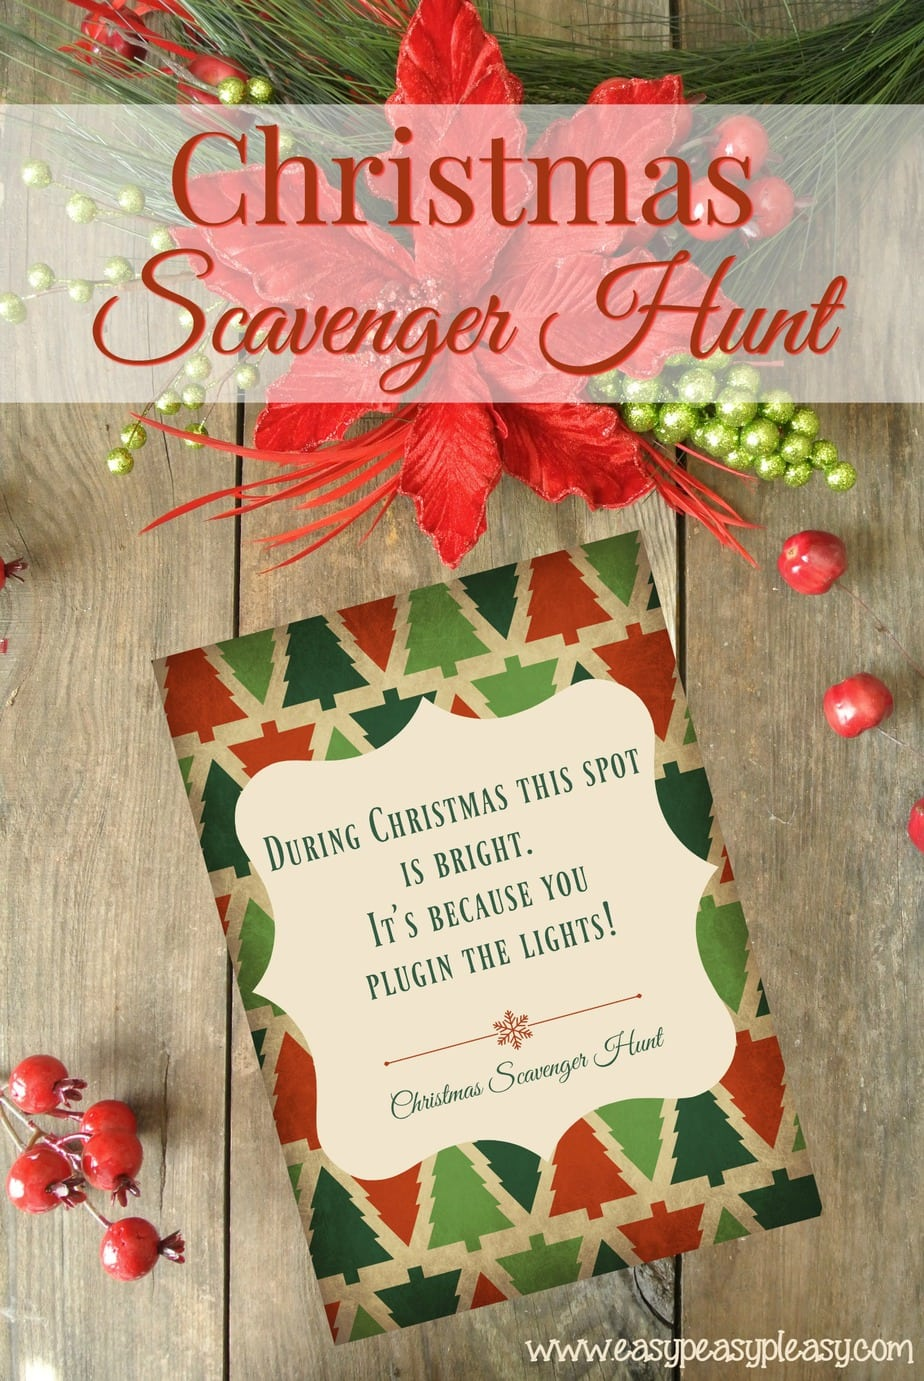 photograph about Christmas Scavenger Hunt Printable Clues named Xmas Scavenger Hunt With Absolutely free Printable Clues - Basic